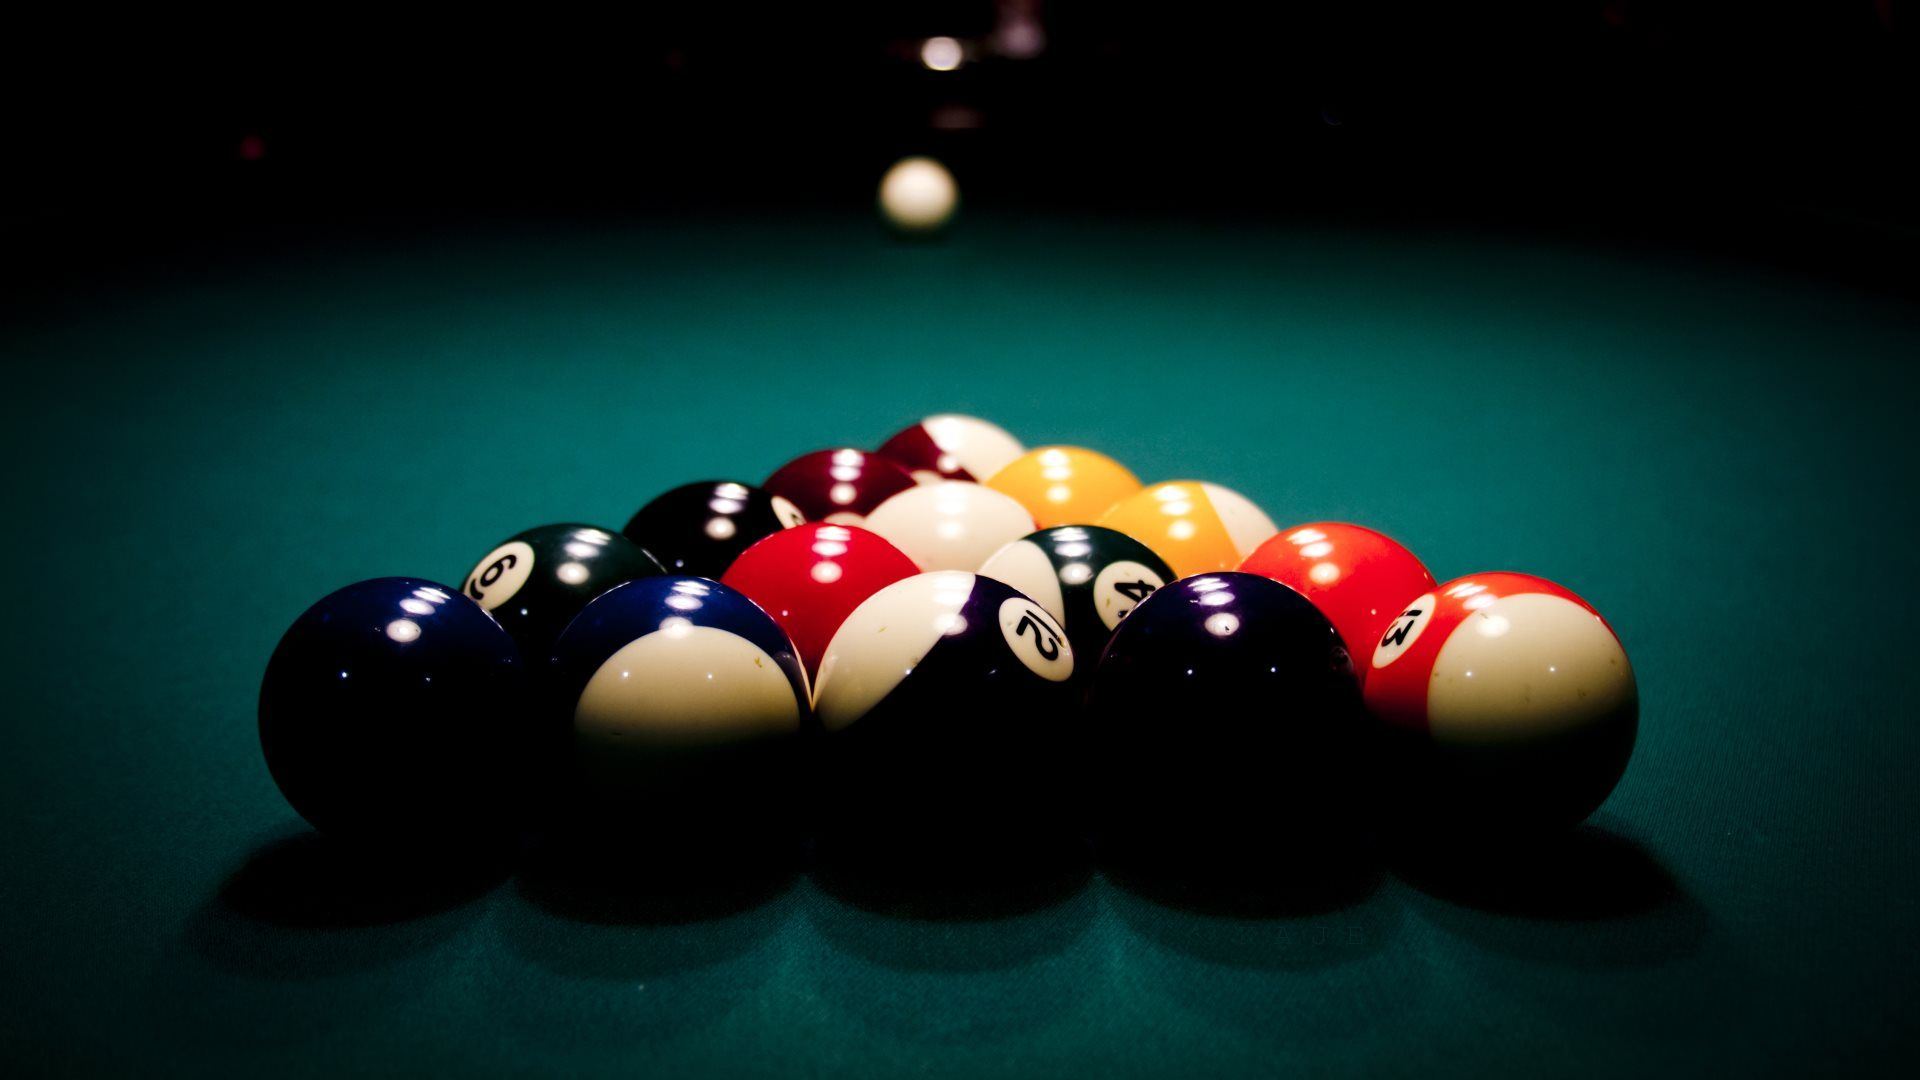 Billiards wallpapers hd - 8 ball pictures ...